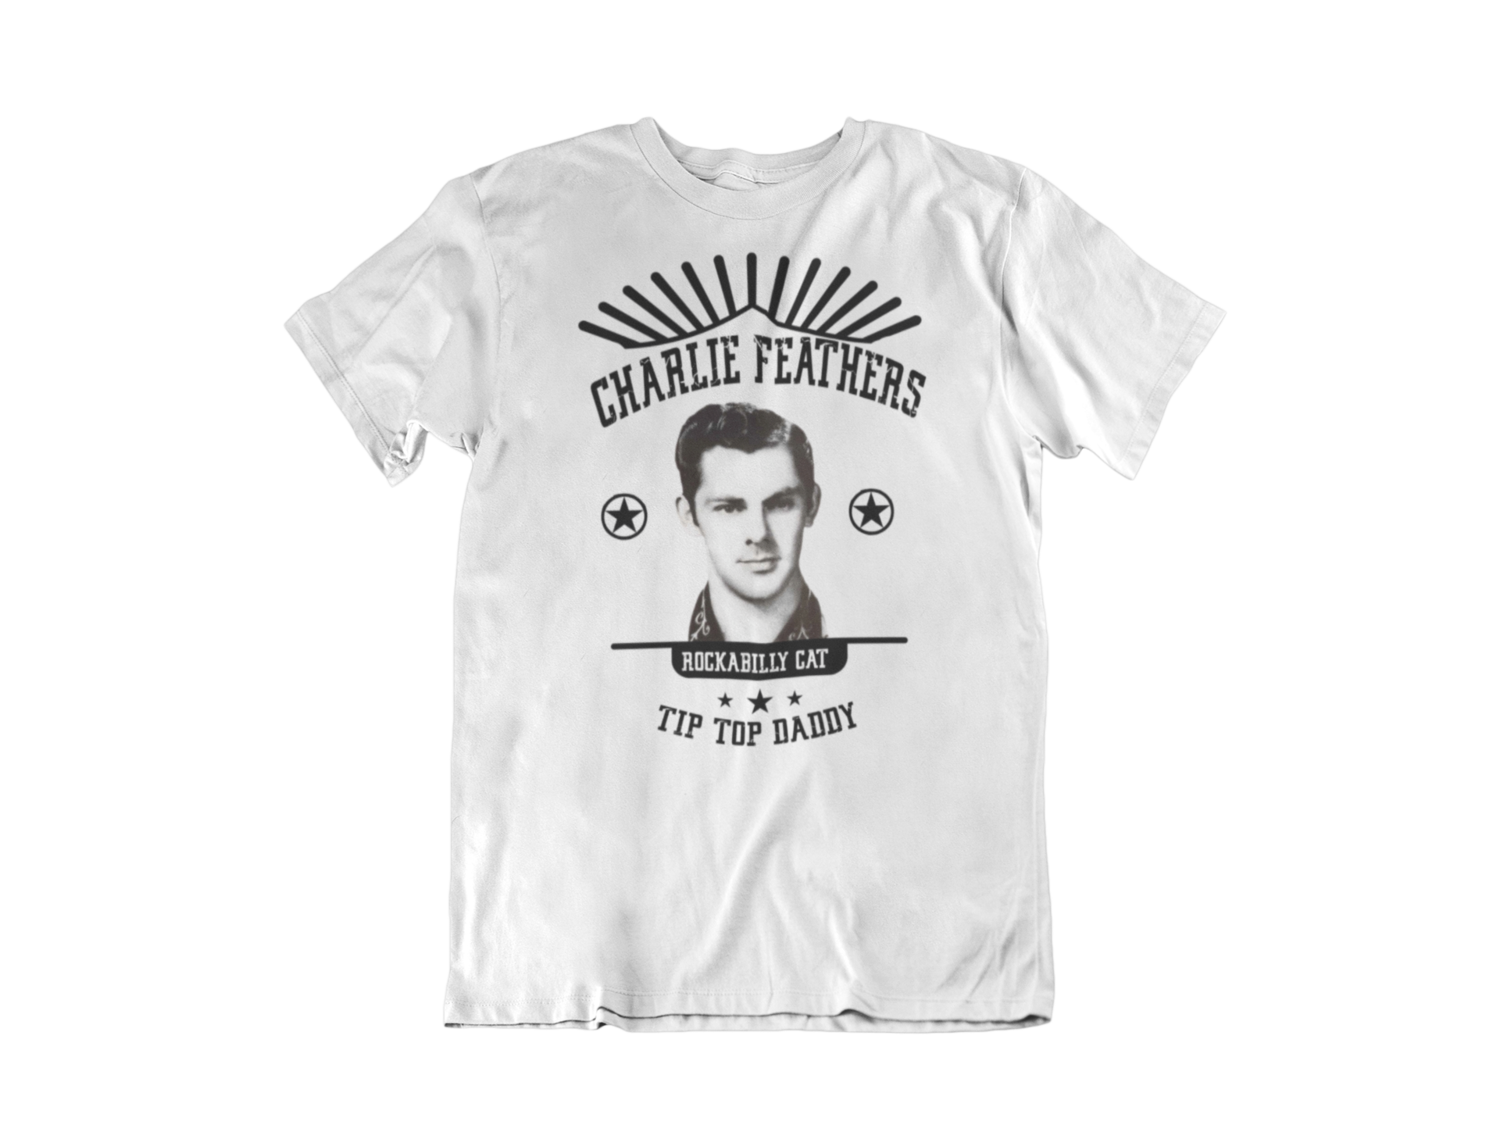 CHARLIE FEATHERS T-SHIRT FOR MEN